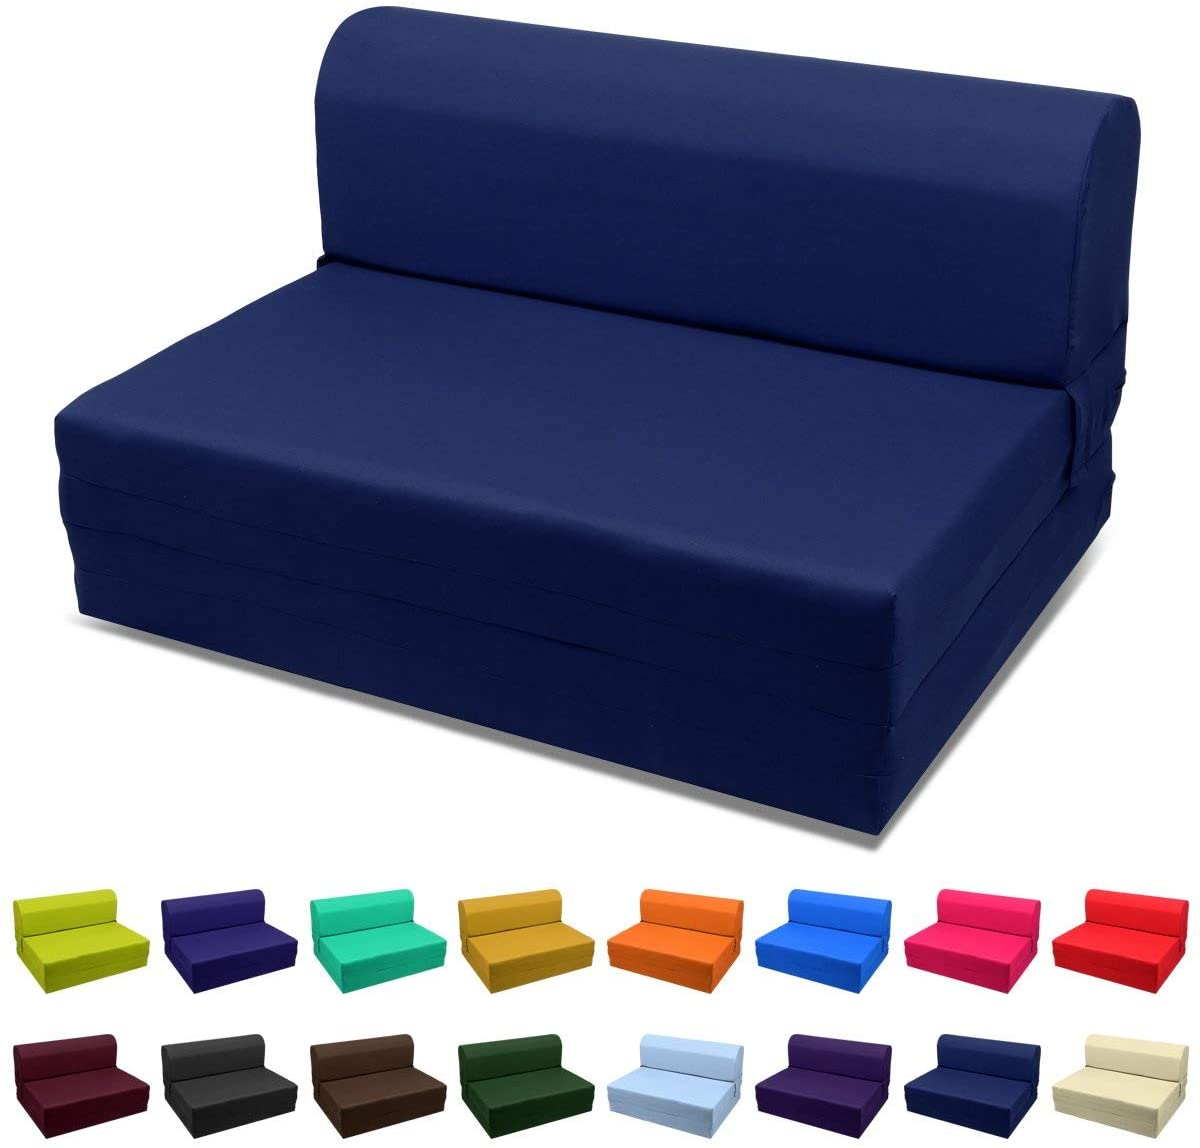 Magshion Futon Furniture Sleeper Chair Folding Foam Bed Choose Color & Sized Single,Twin or Full (Single (5x23x70), Navy Blue)